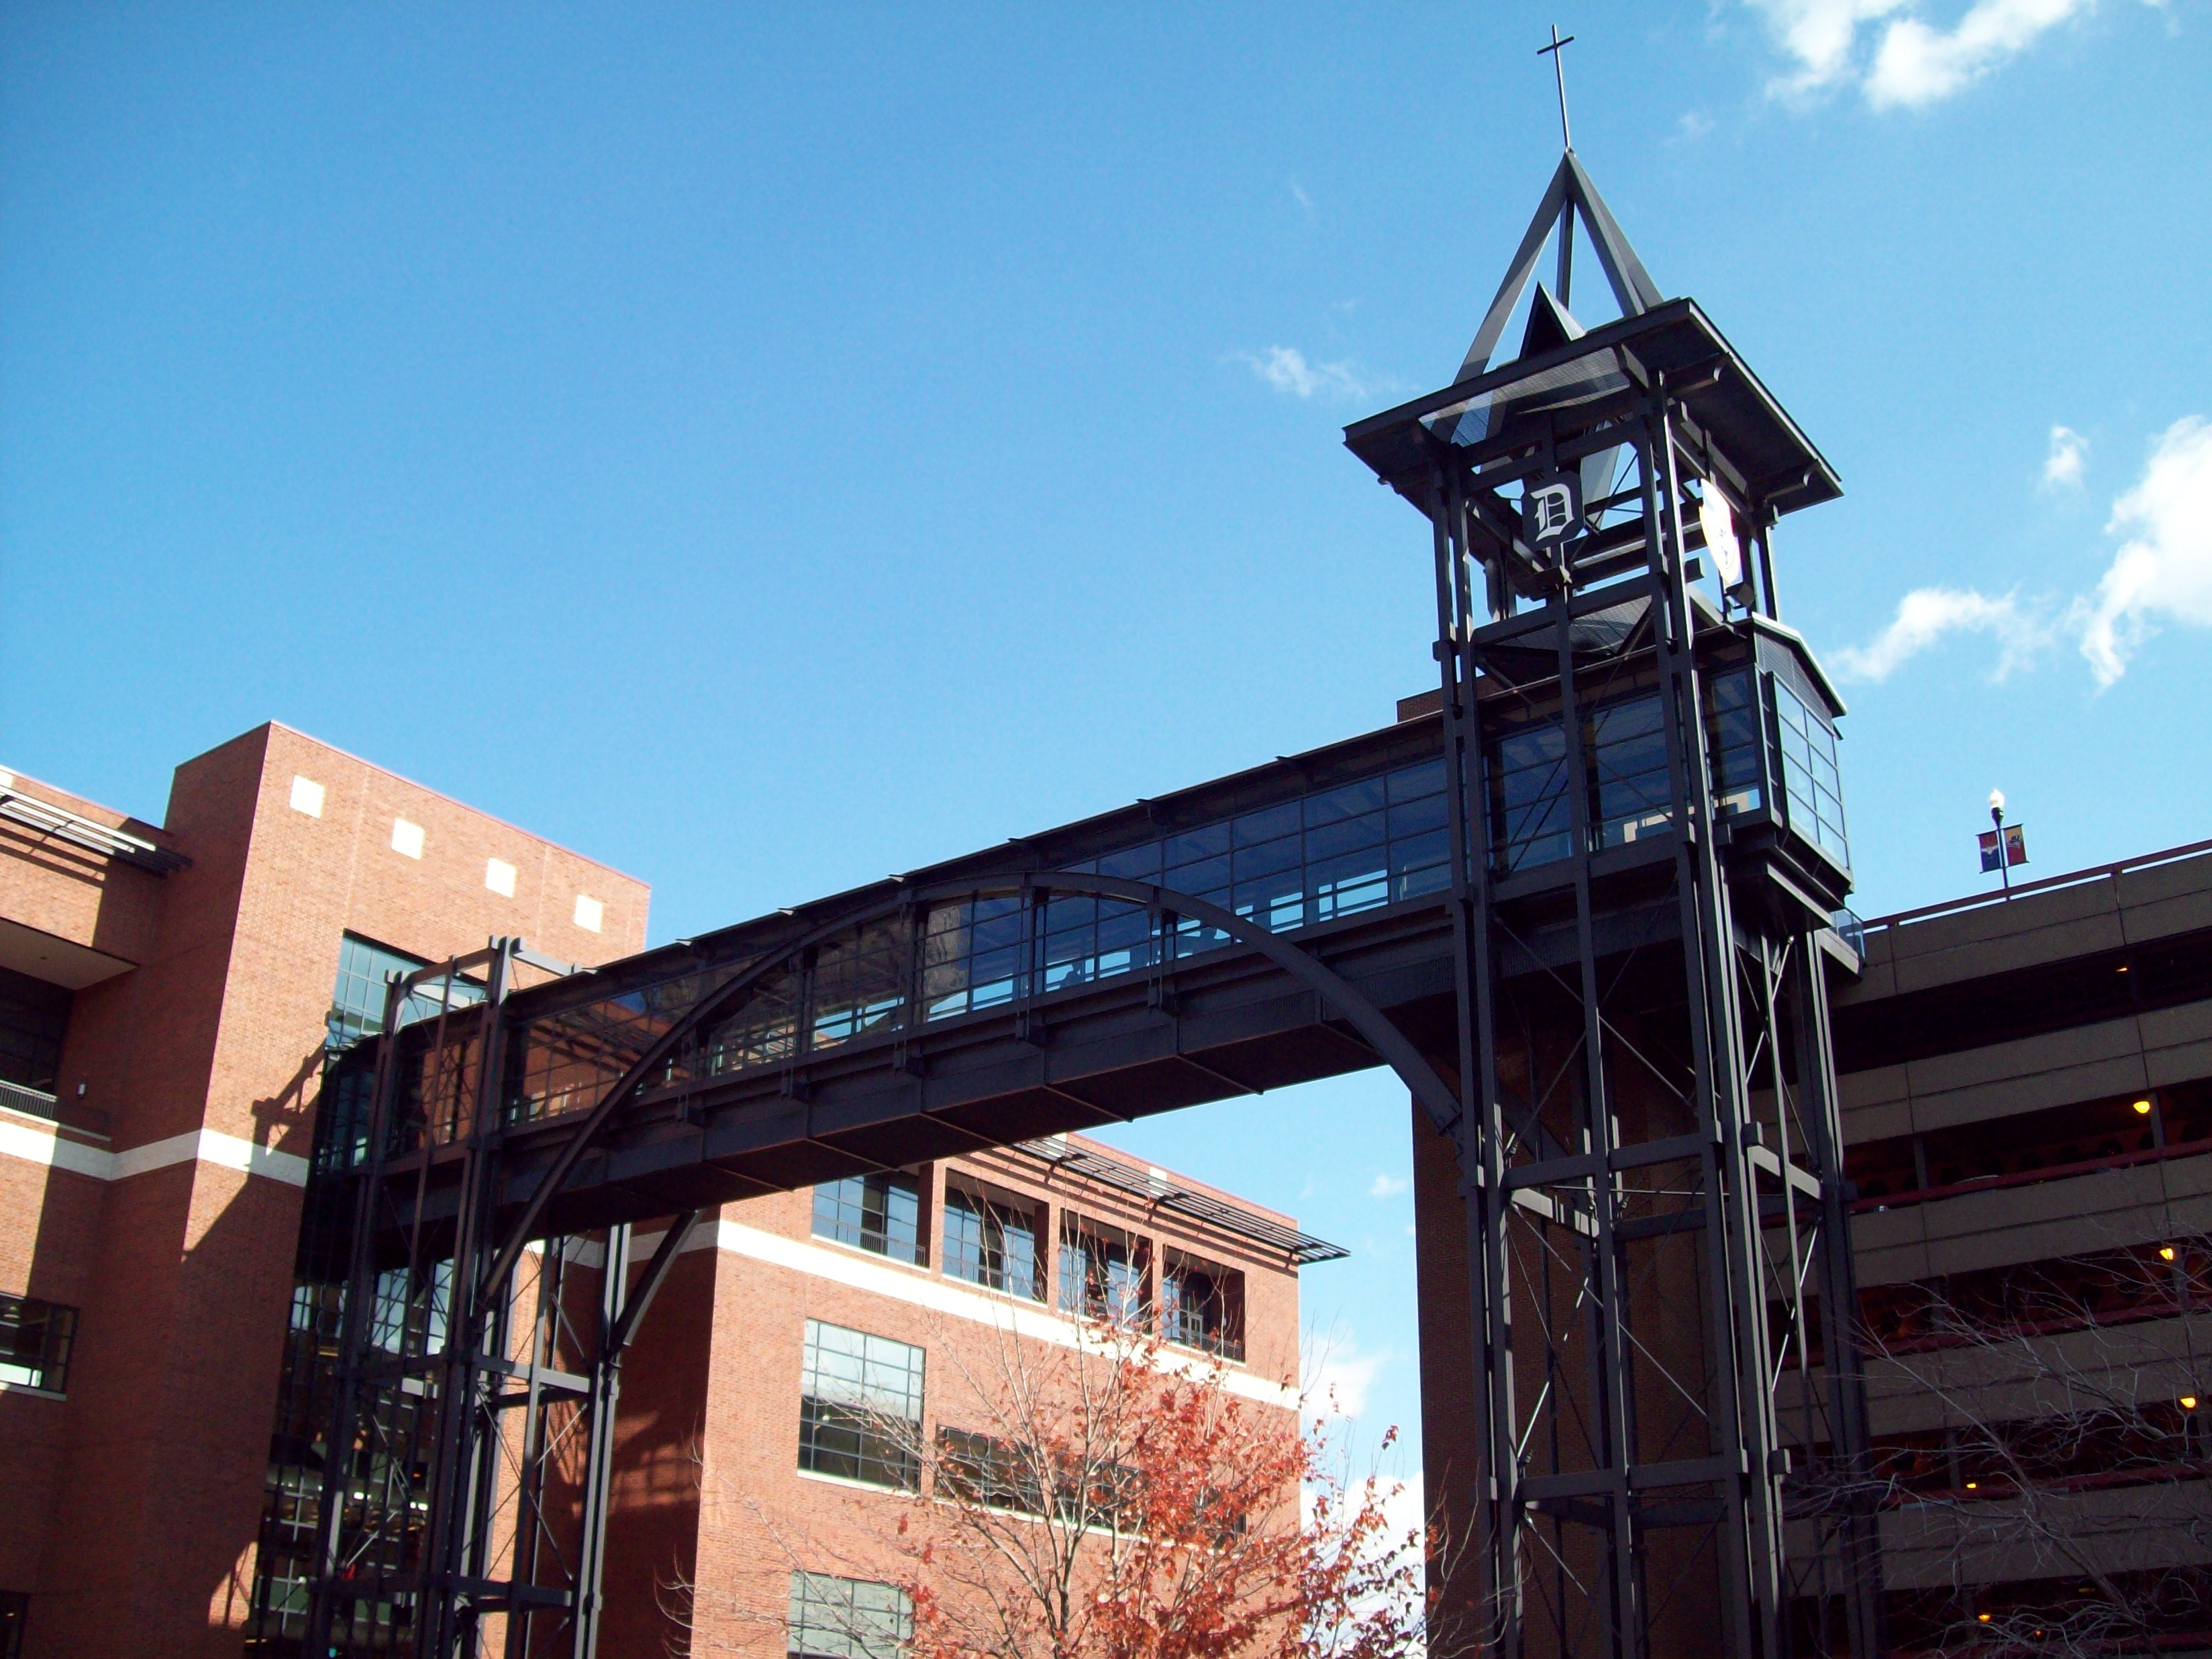 Sklar Skywalk, Duquesne University